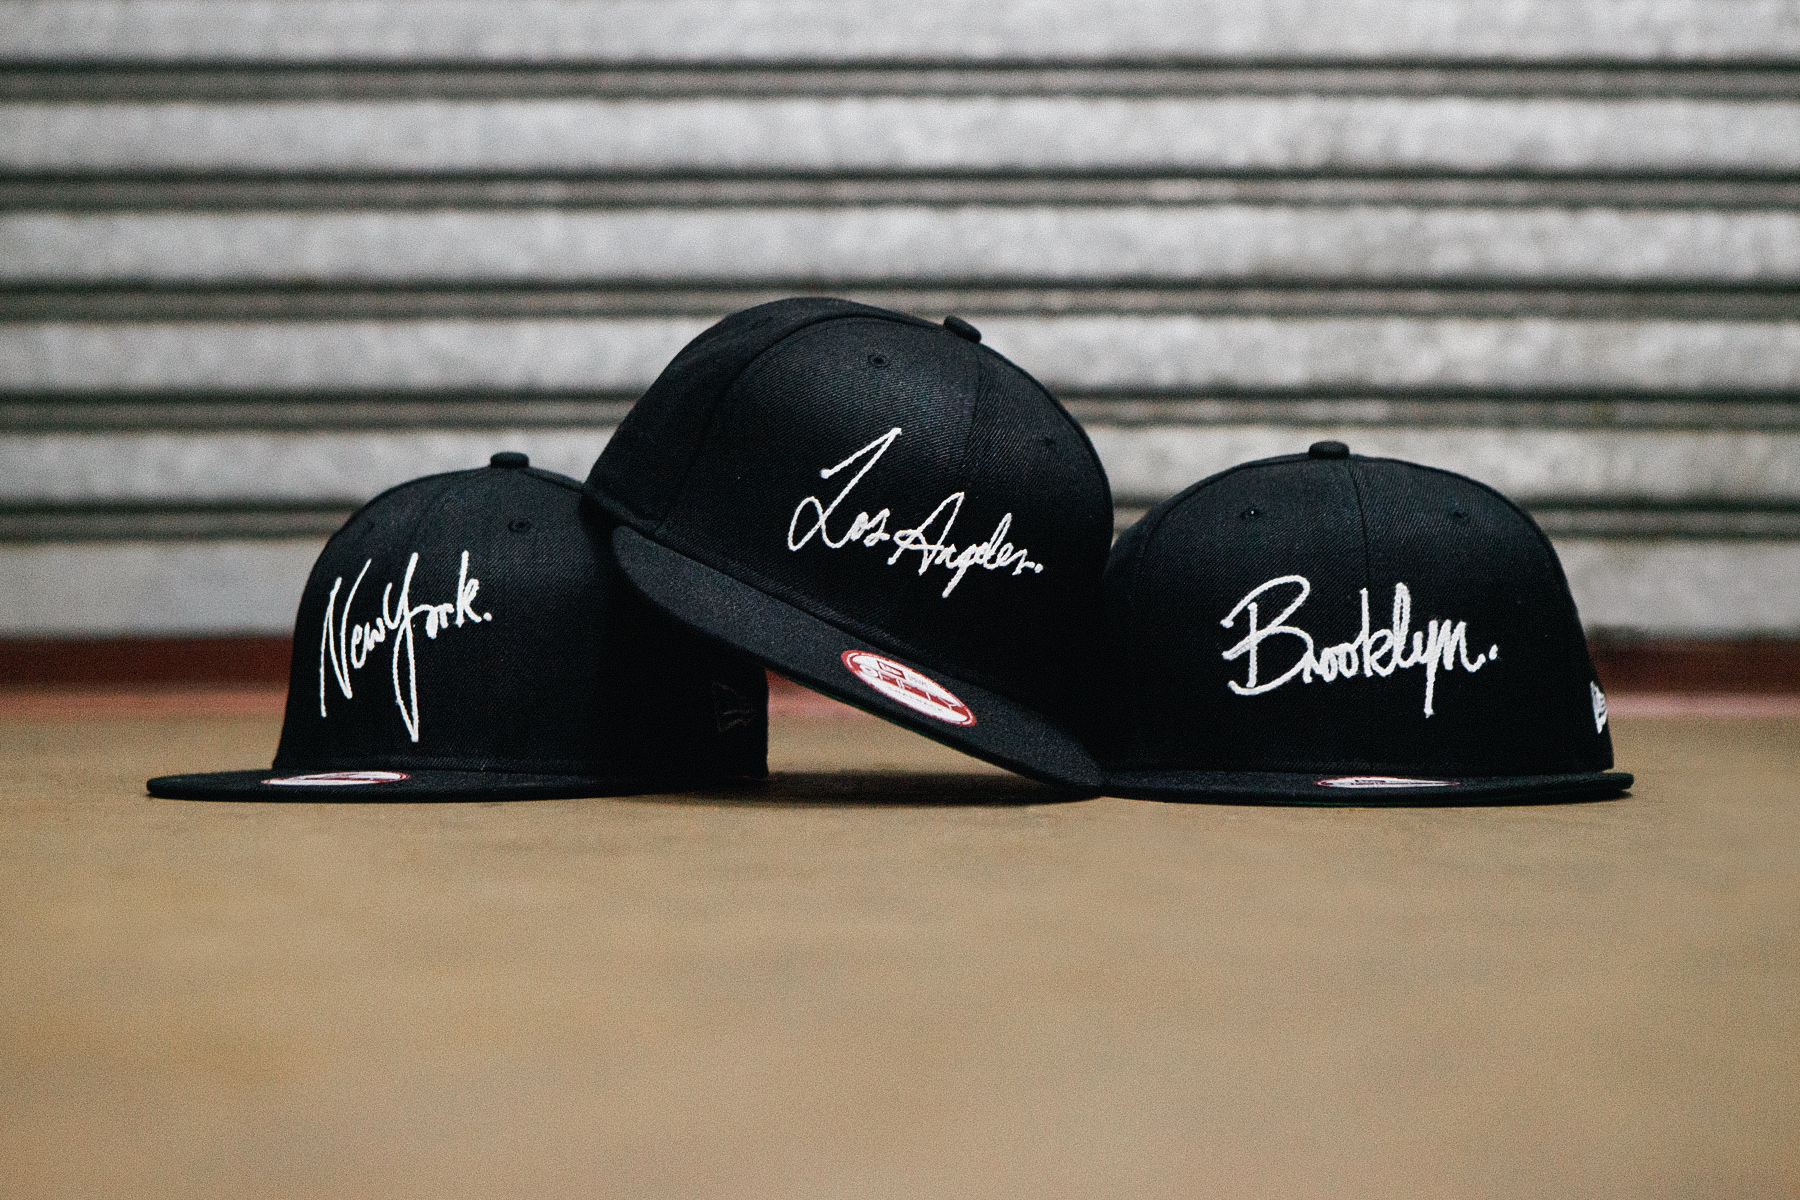 New Era Launches New Cap Collection Paying Homage to Brooklyn, New York and Los Angeles